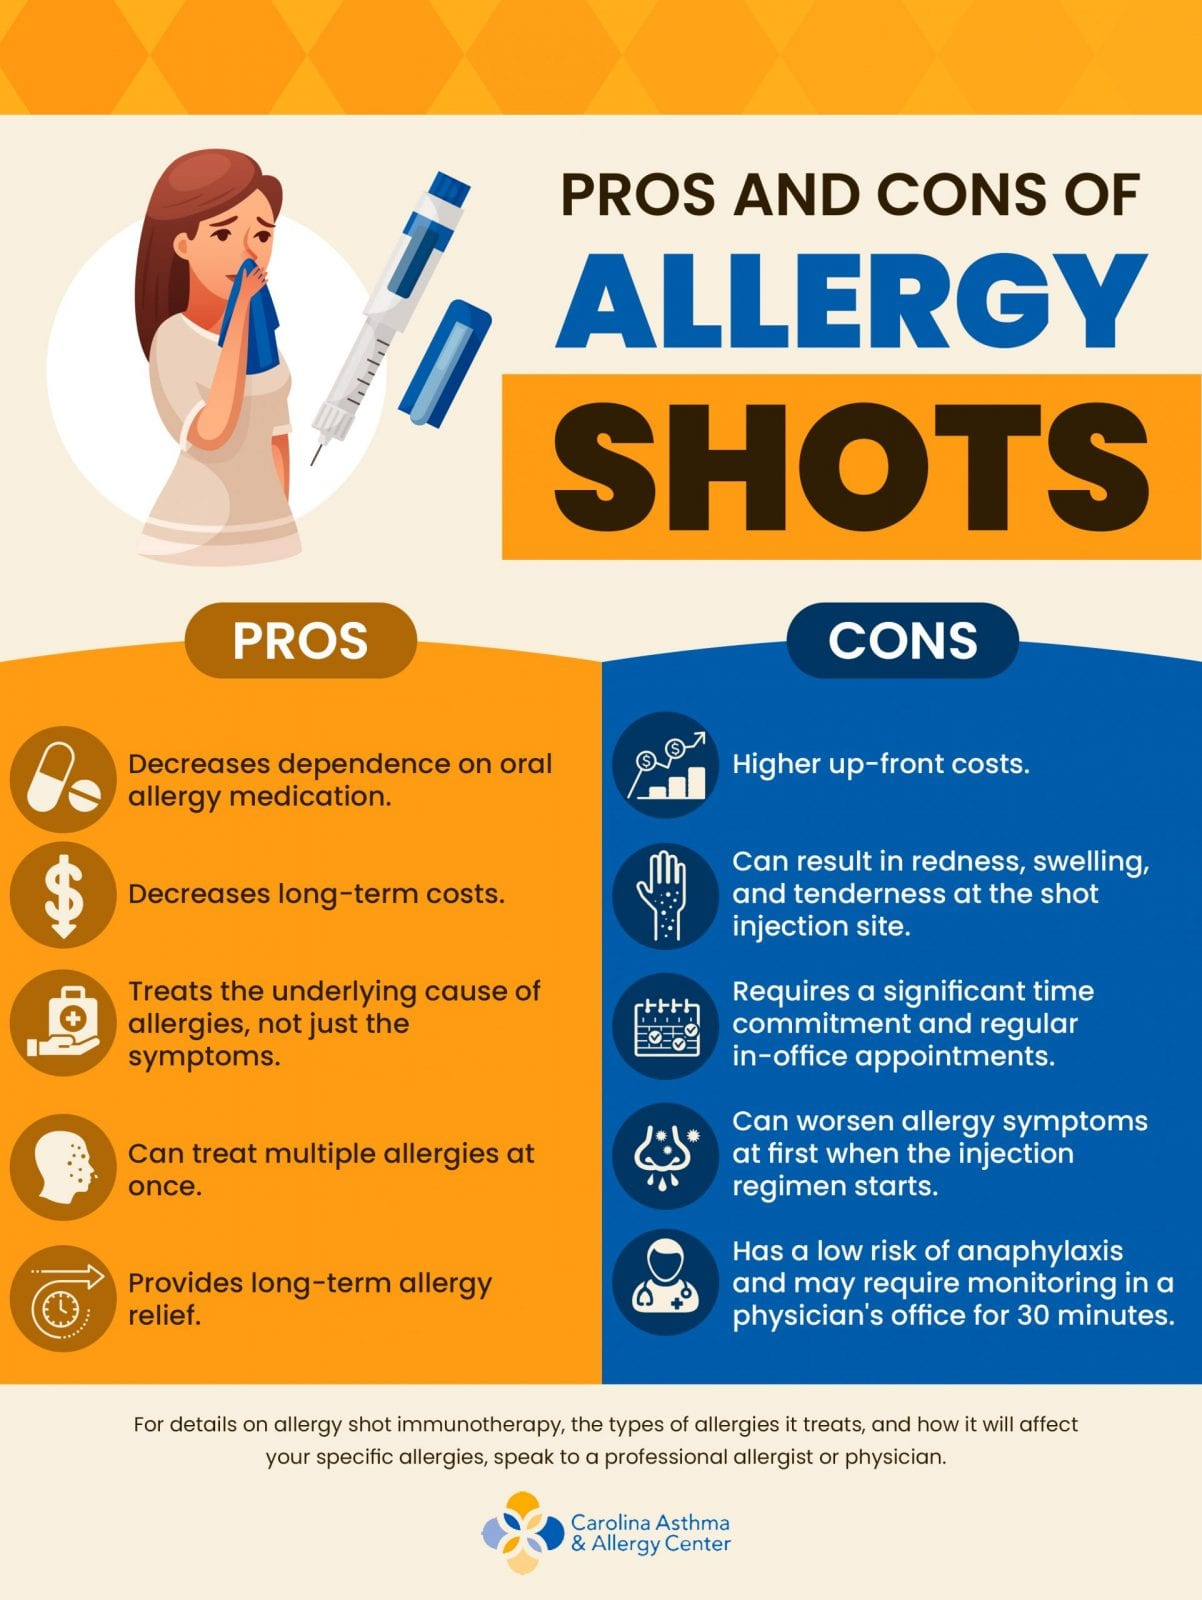 The benefits and disadvantages of allergy shots (subcutaneous immunotherapy).